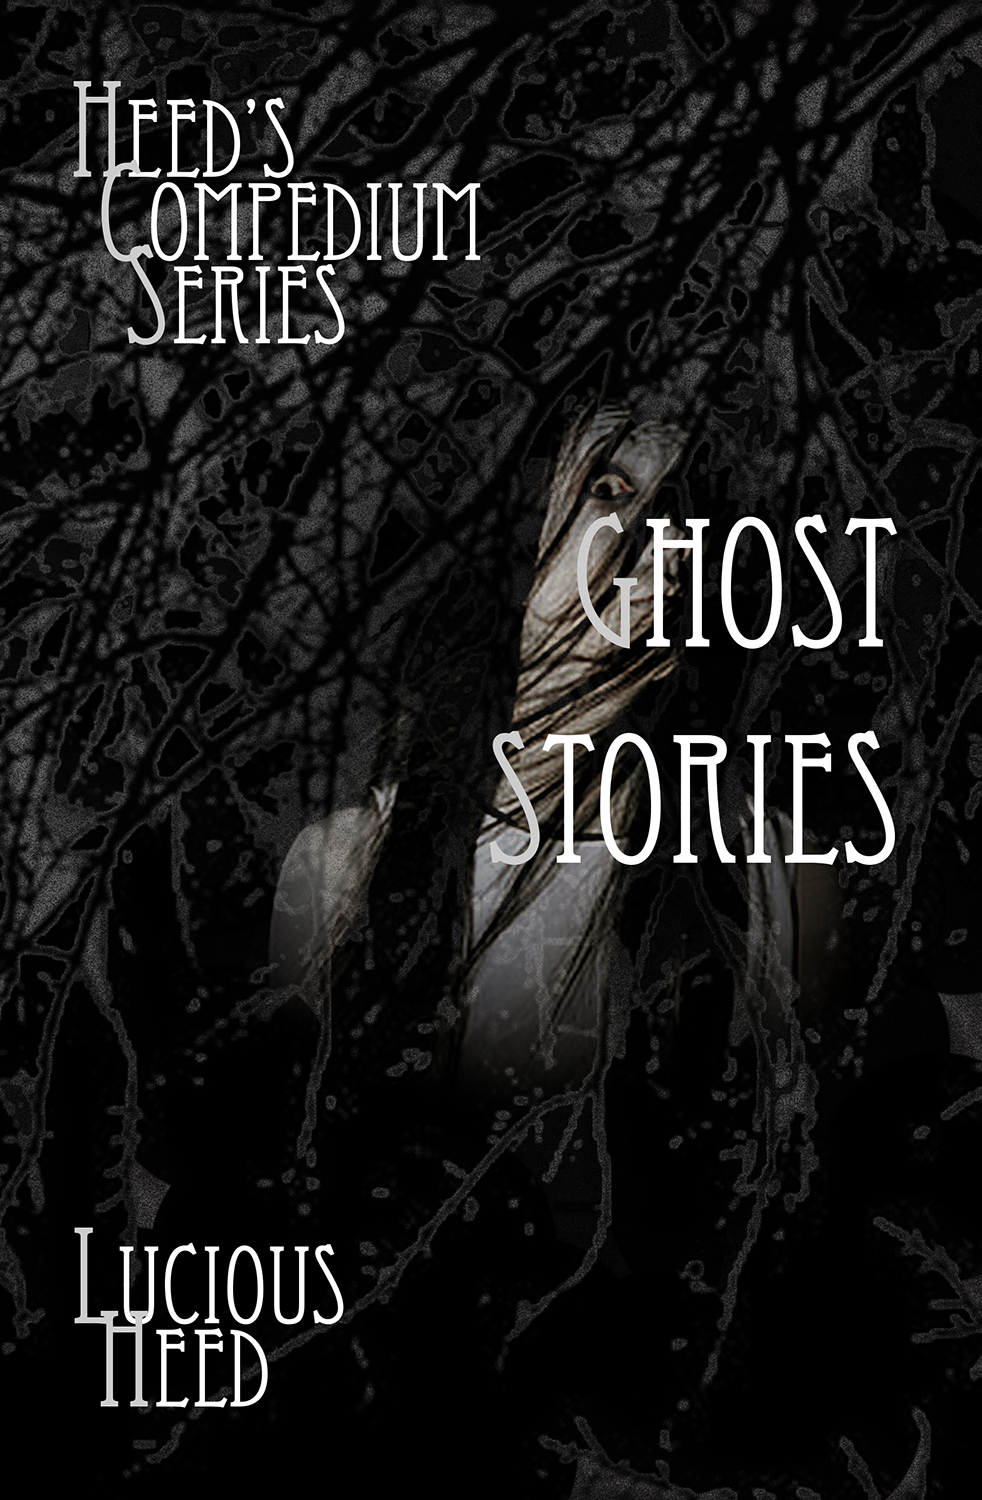 Heed's Compedium Series: Ghost Stories By: Lucios Heed